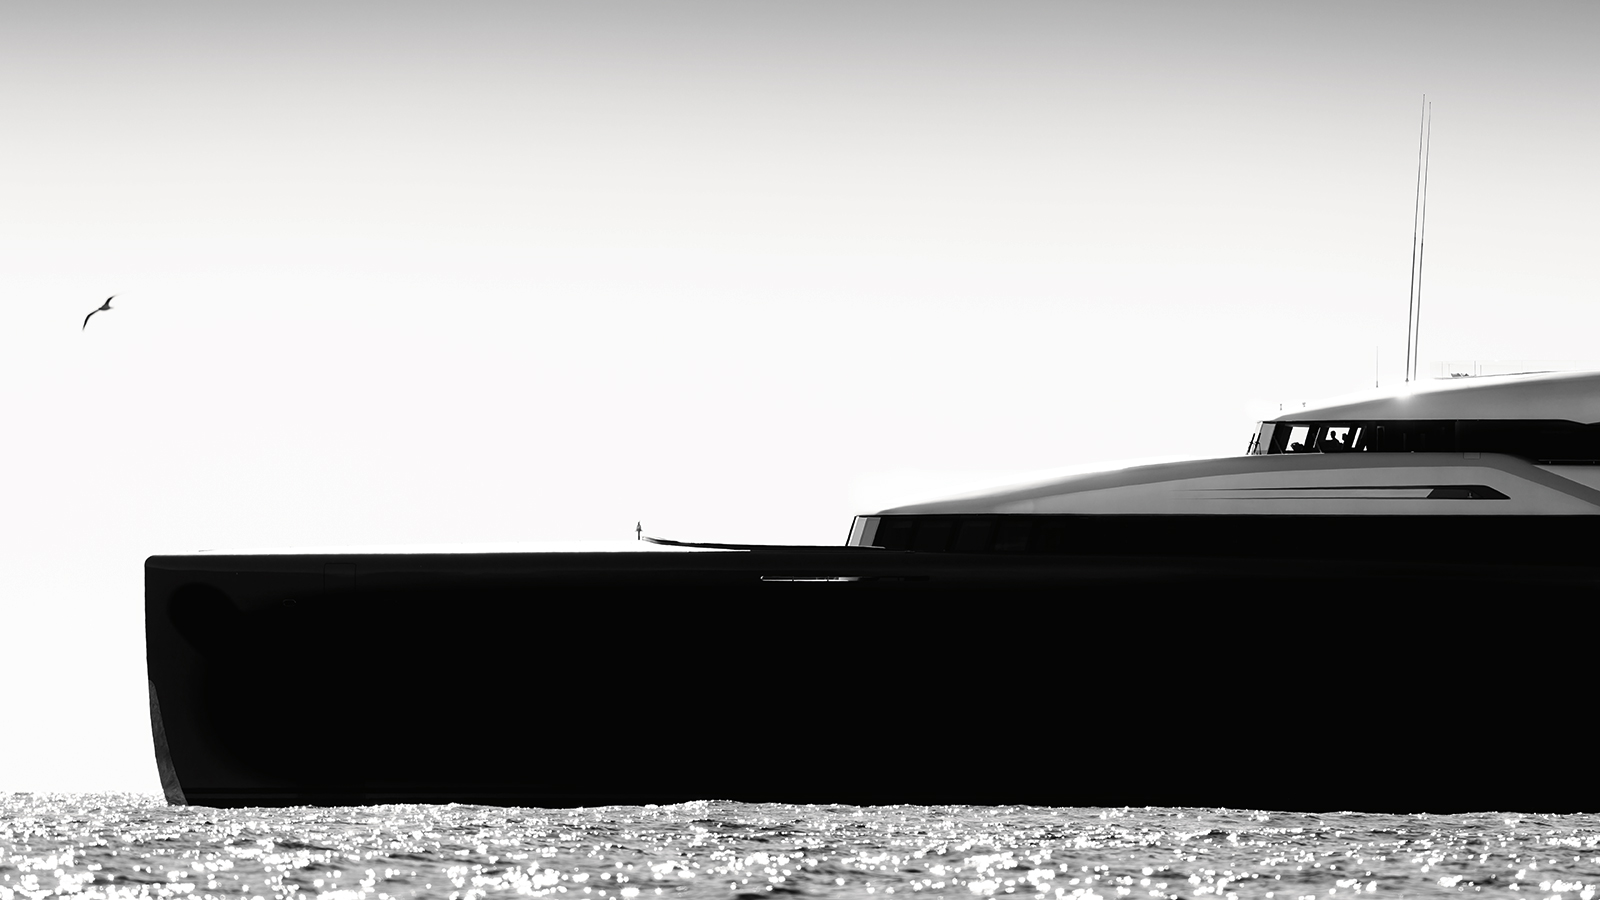 the-bow-of-the-abeking-and-rasmussen-superyacht-aviva-credit-guillaume-plisson